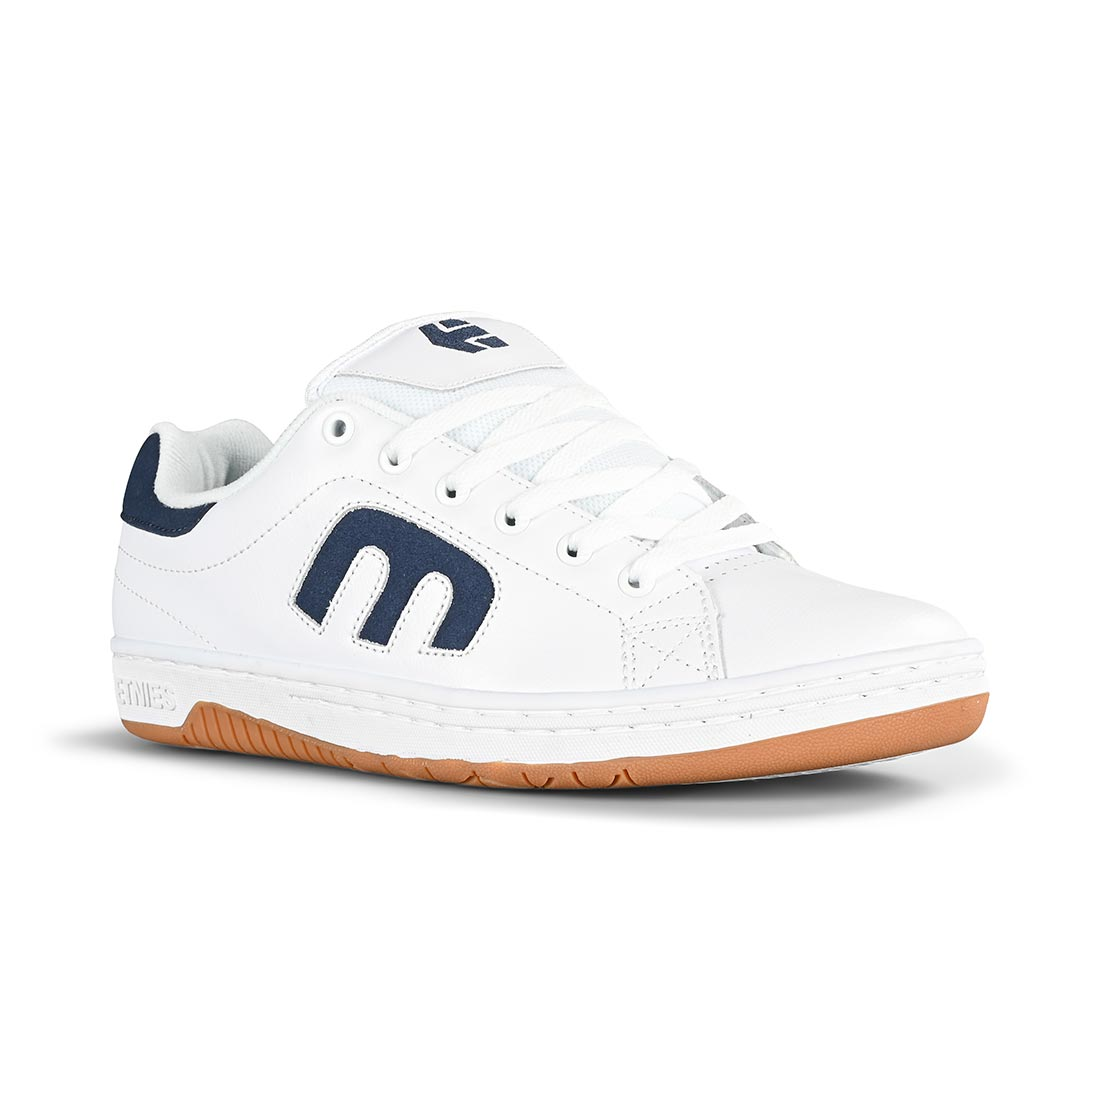 Skate Shoe Free Next Day Delivery Etnies Callicut Trainers White